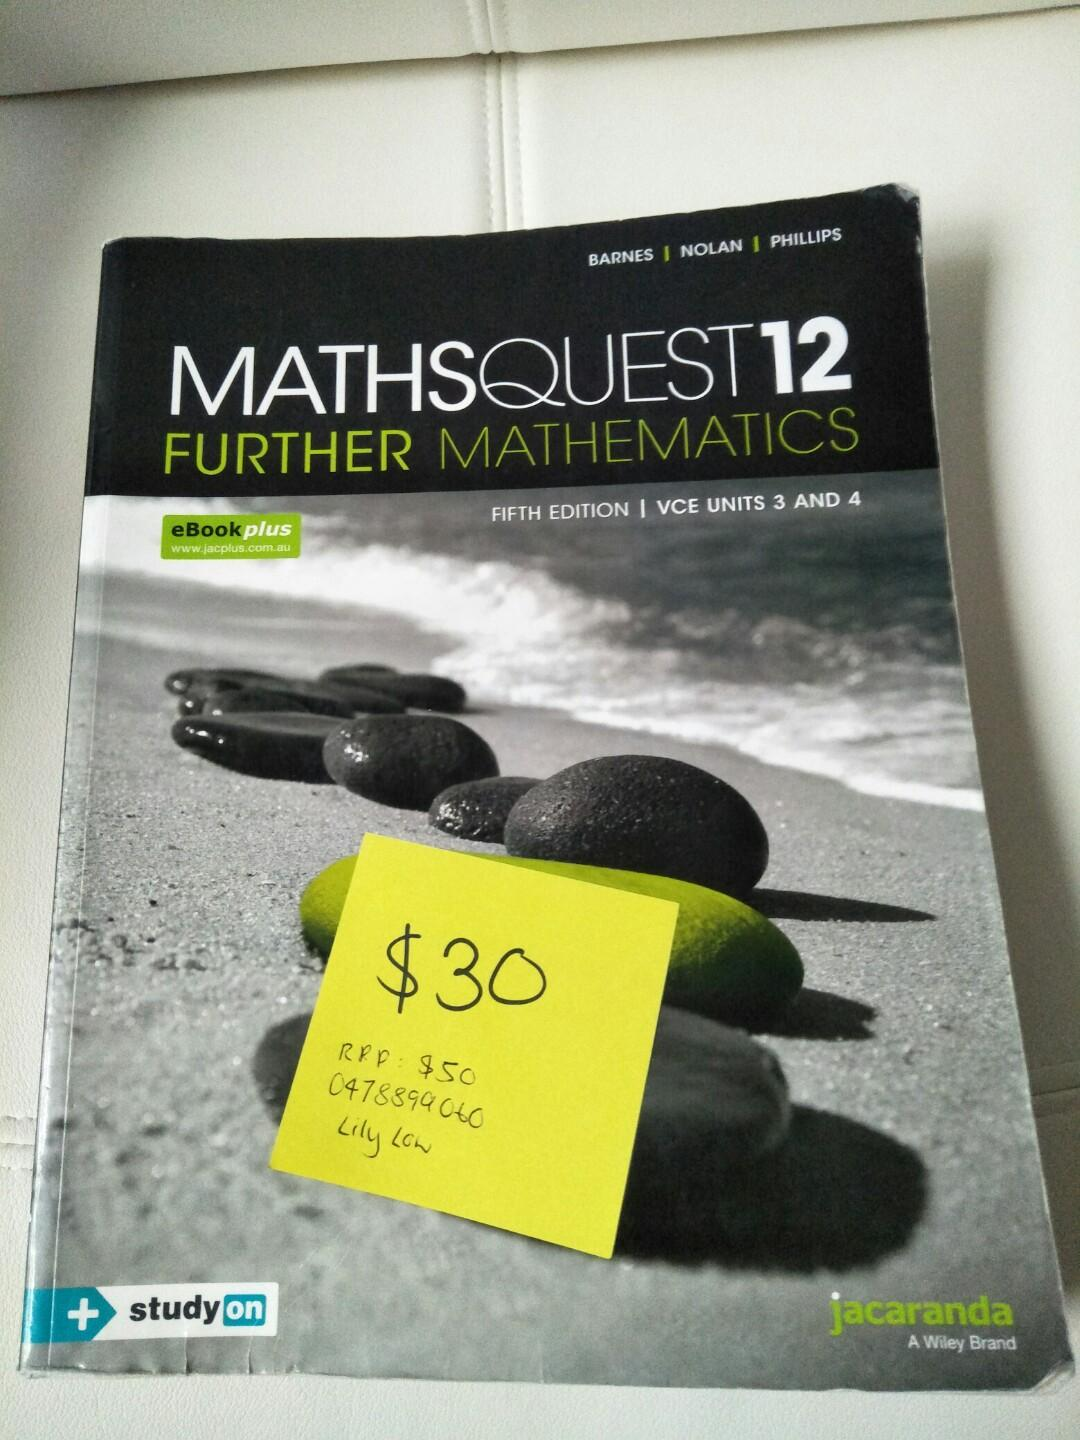 Math Quest Further math 12 5 fifth edition Units 3 and 4